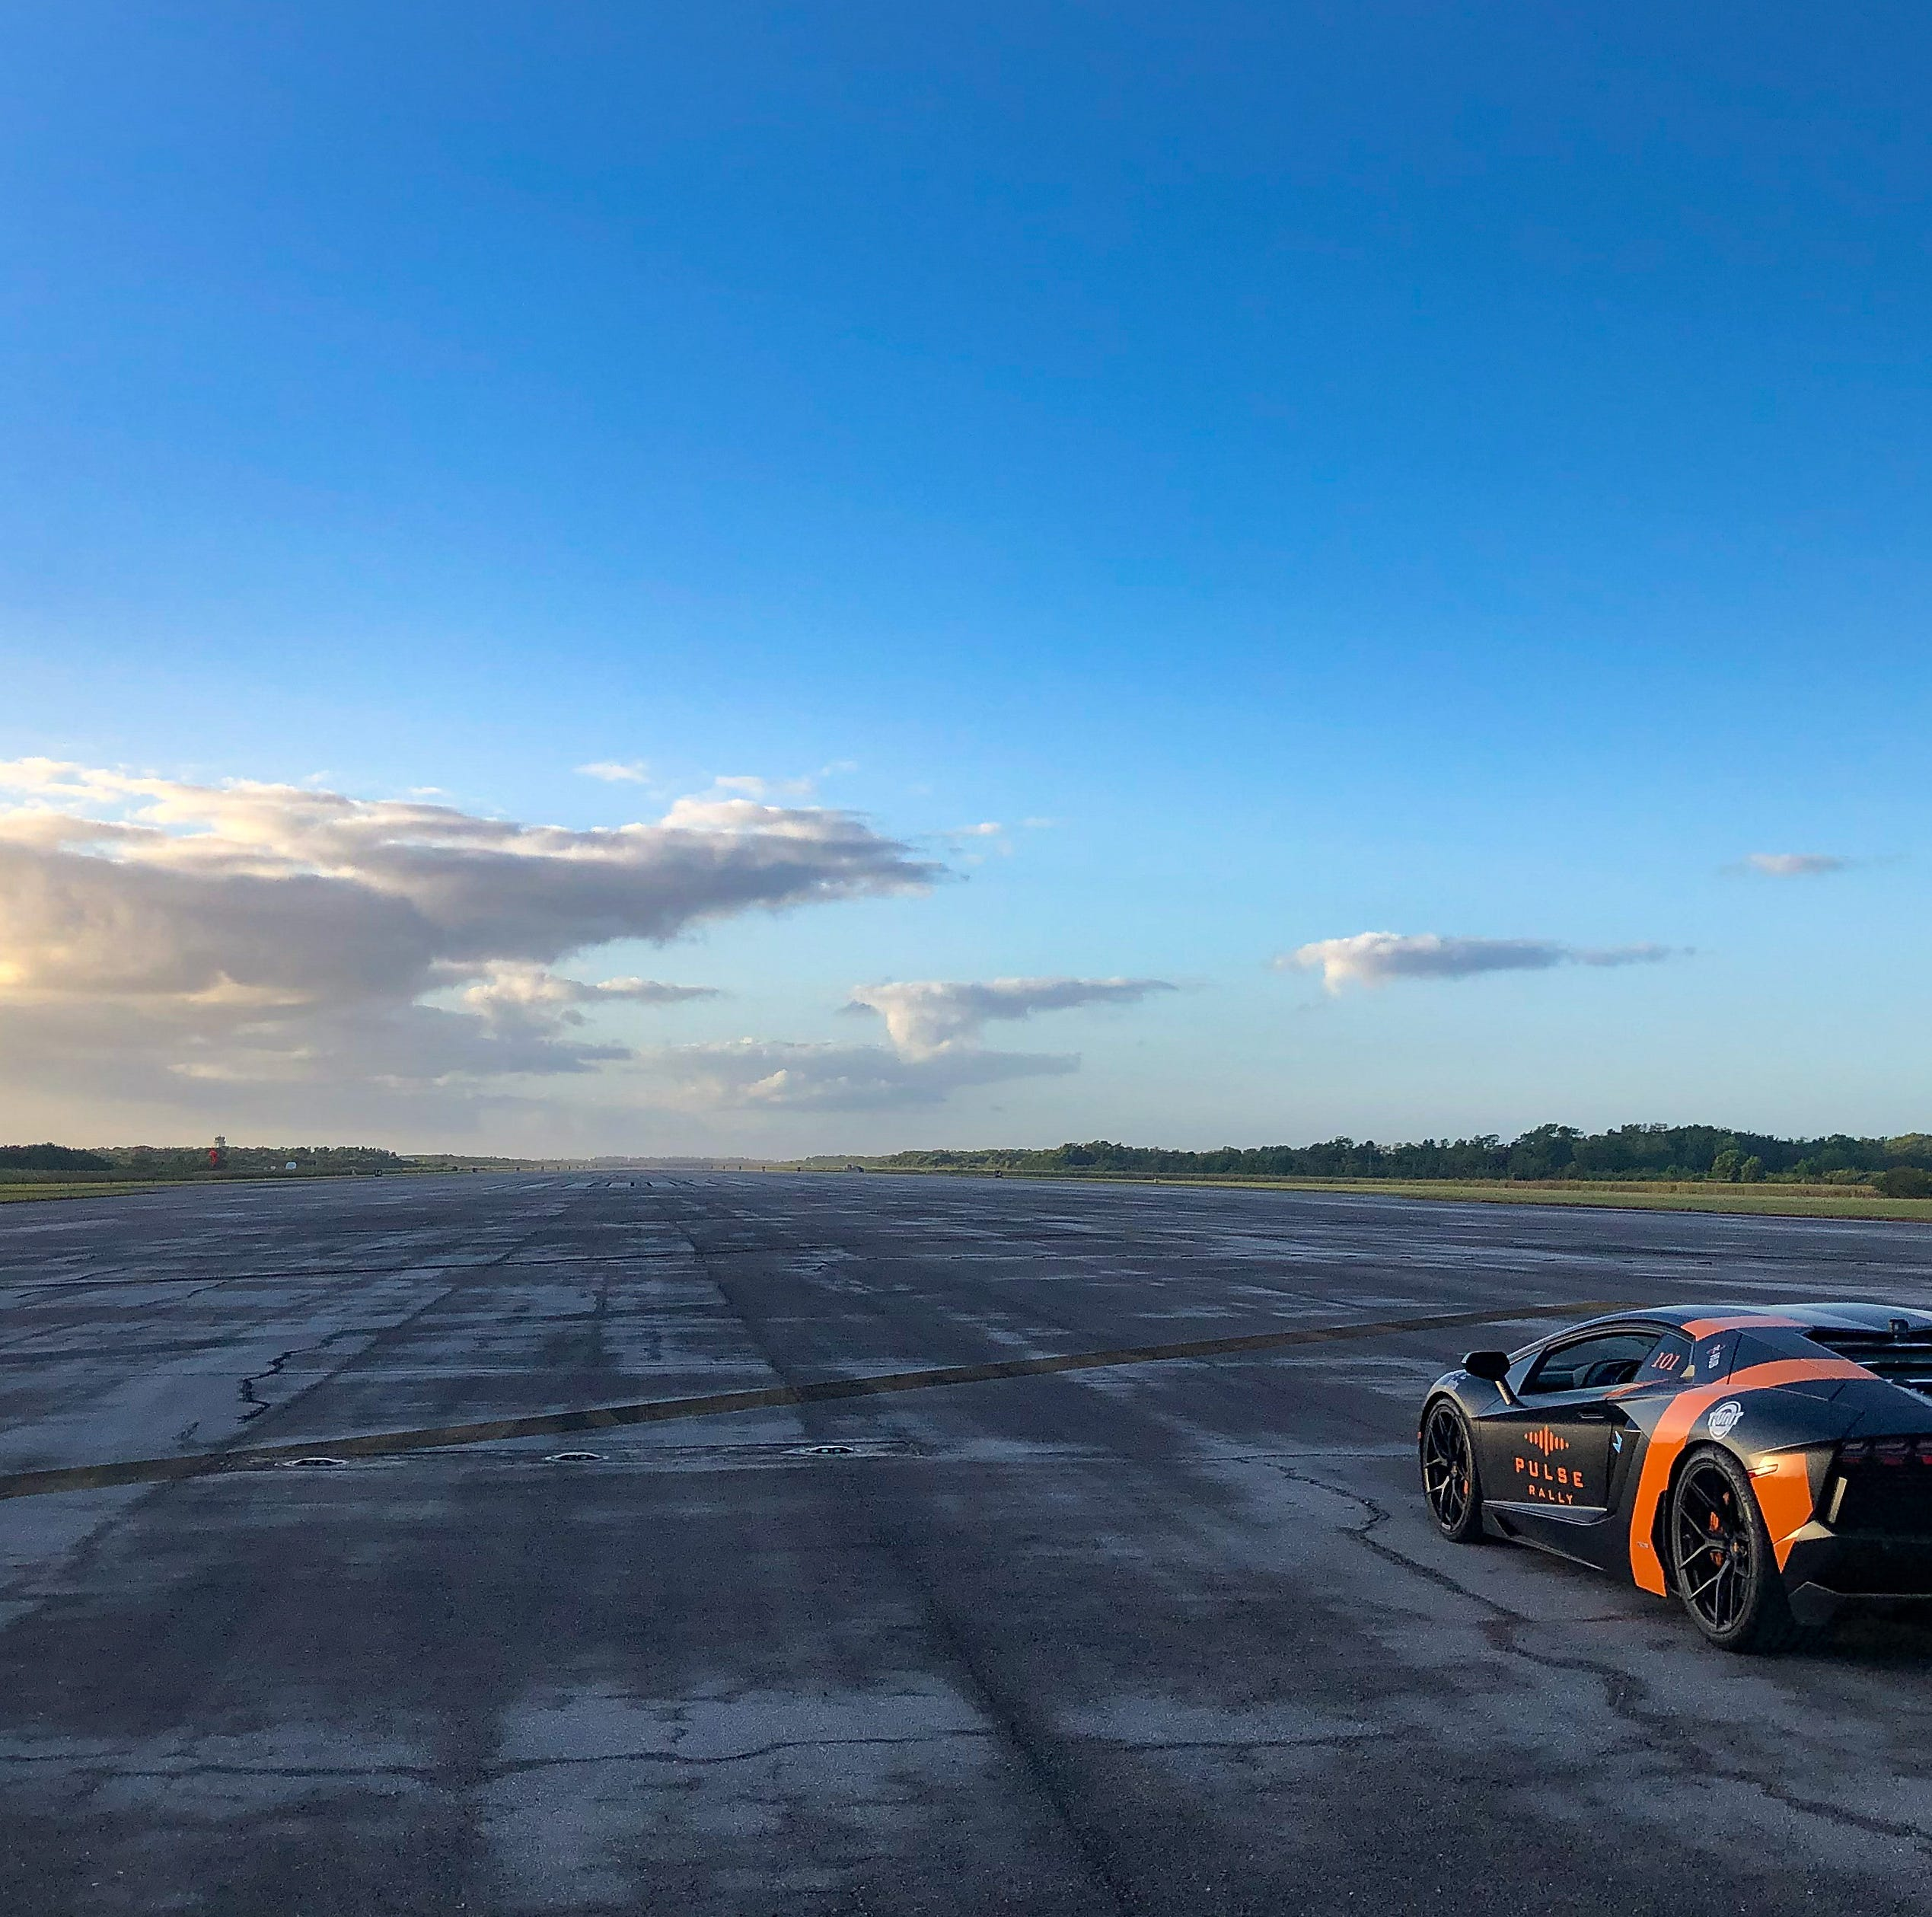 A bond over burnt rubber: Father and son speed test their supercars where space shuttles once landed